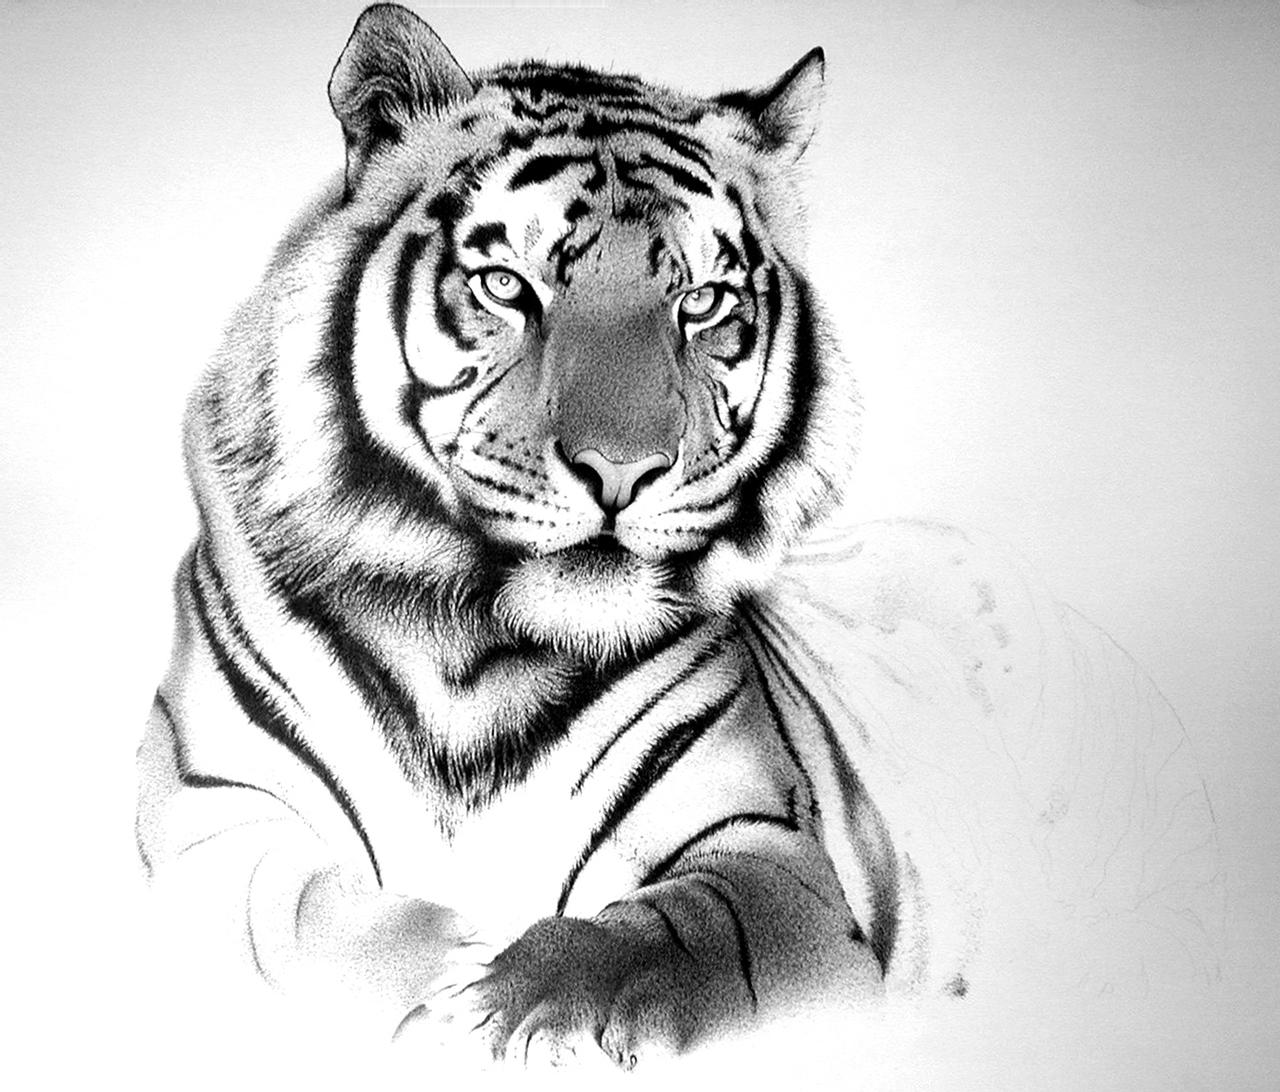 tiger drawing tiger pencil drawing images at paintingvalleycom tiger drawing